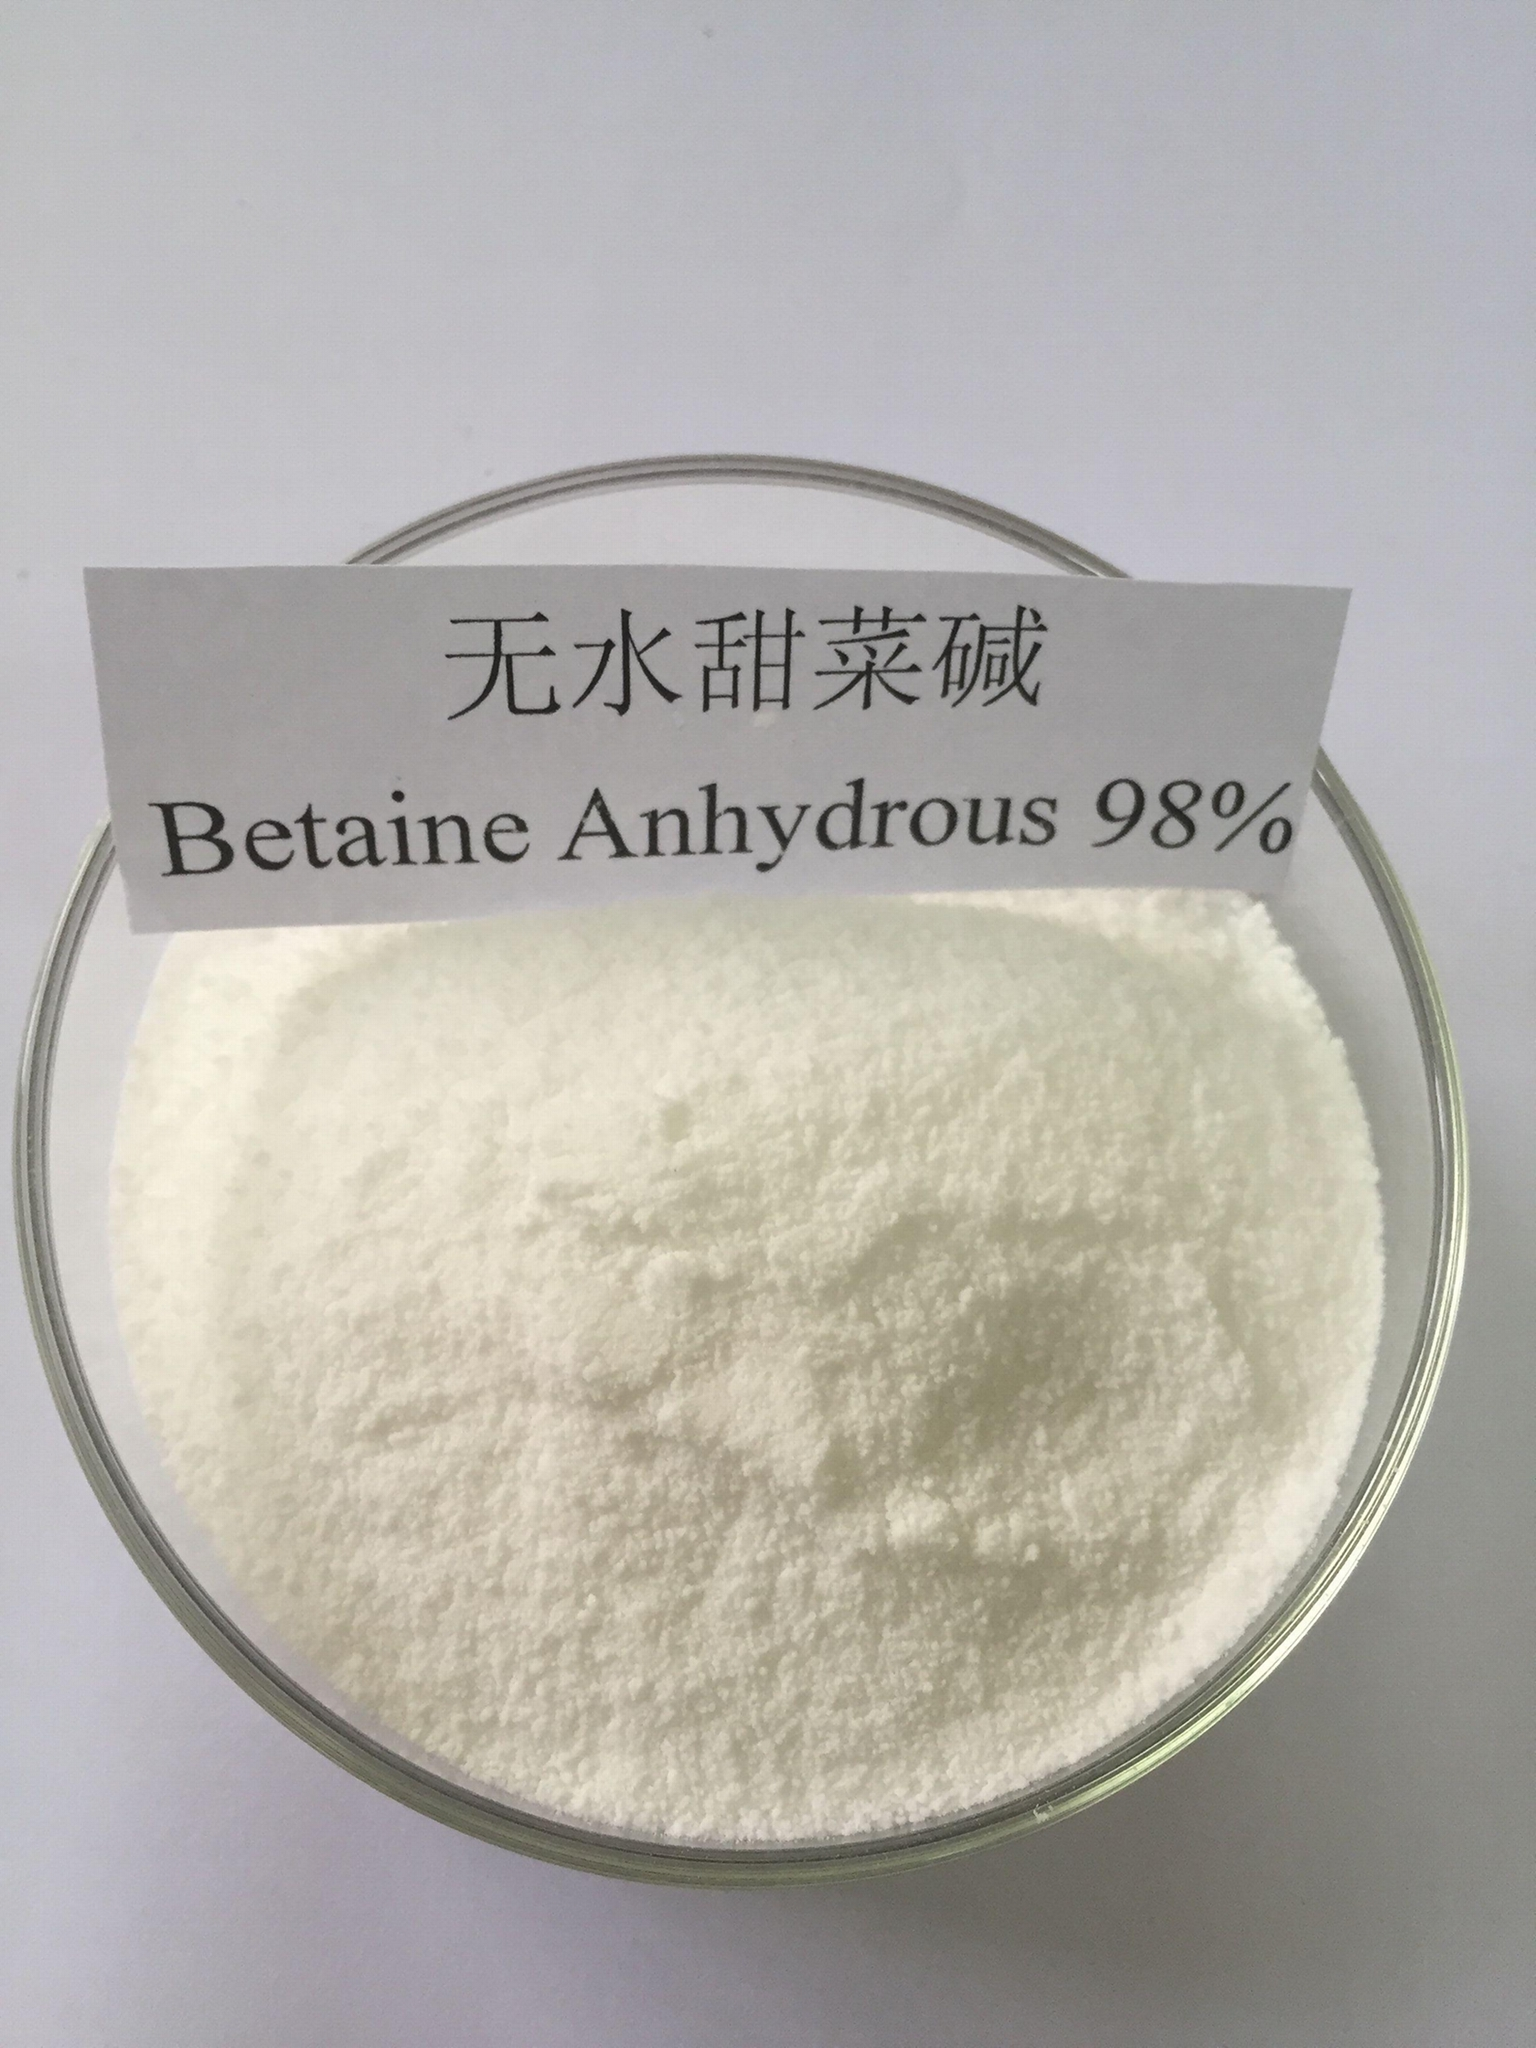 Factory Price Feed Additive 99% Betaine Hydrochloride Anhydrous107-43-7 Powder i 1